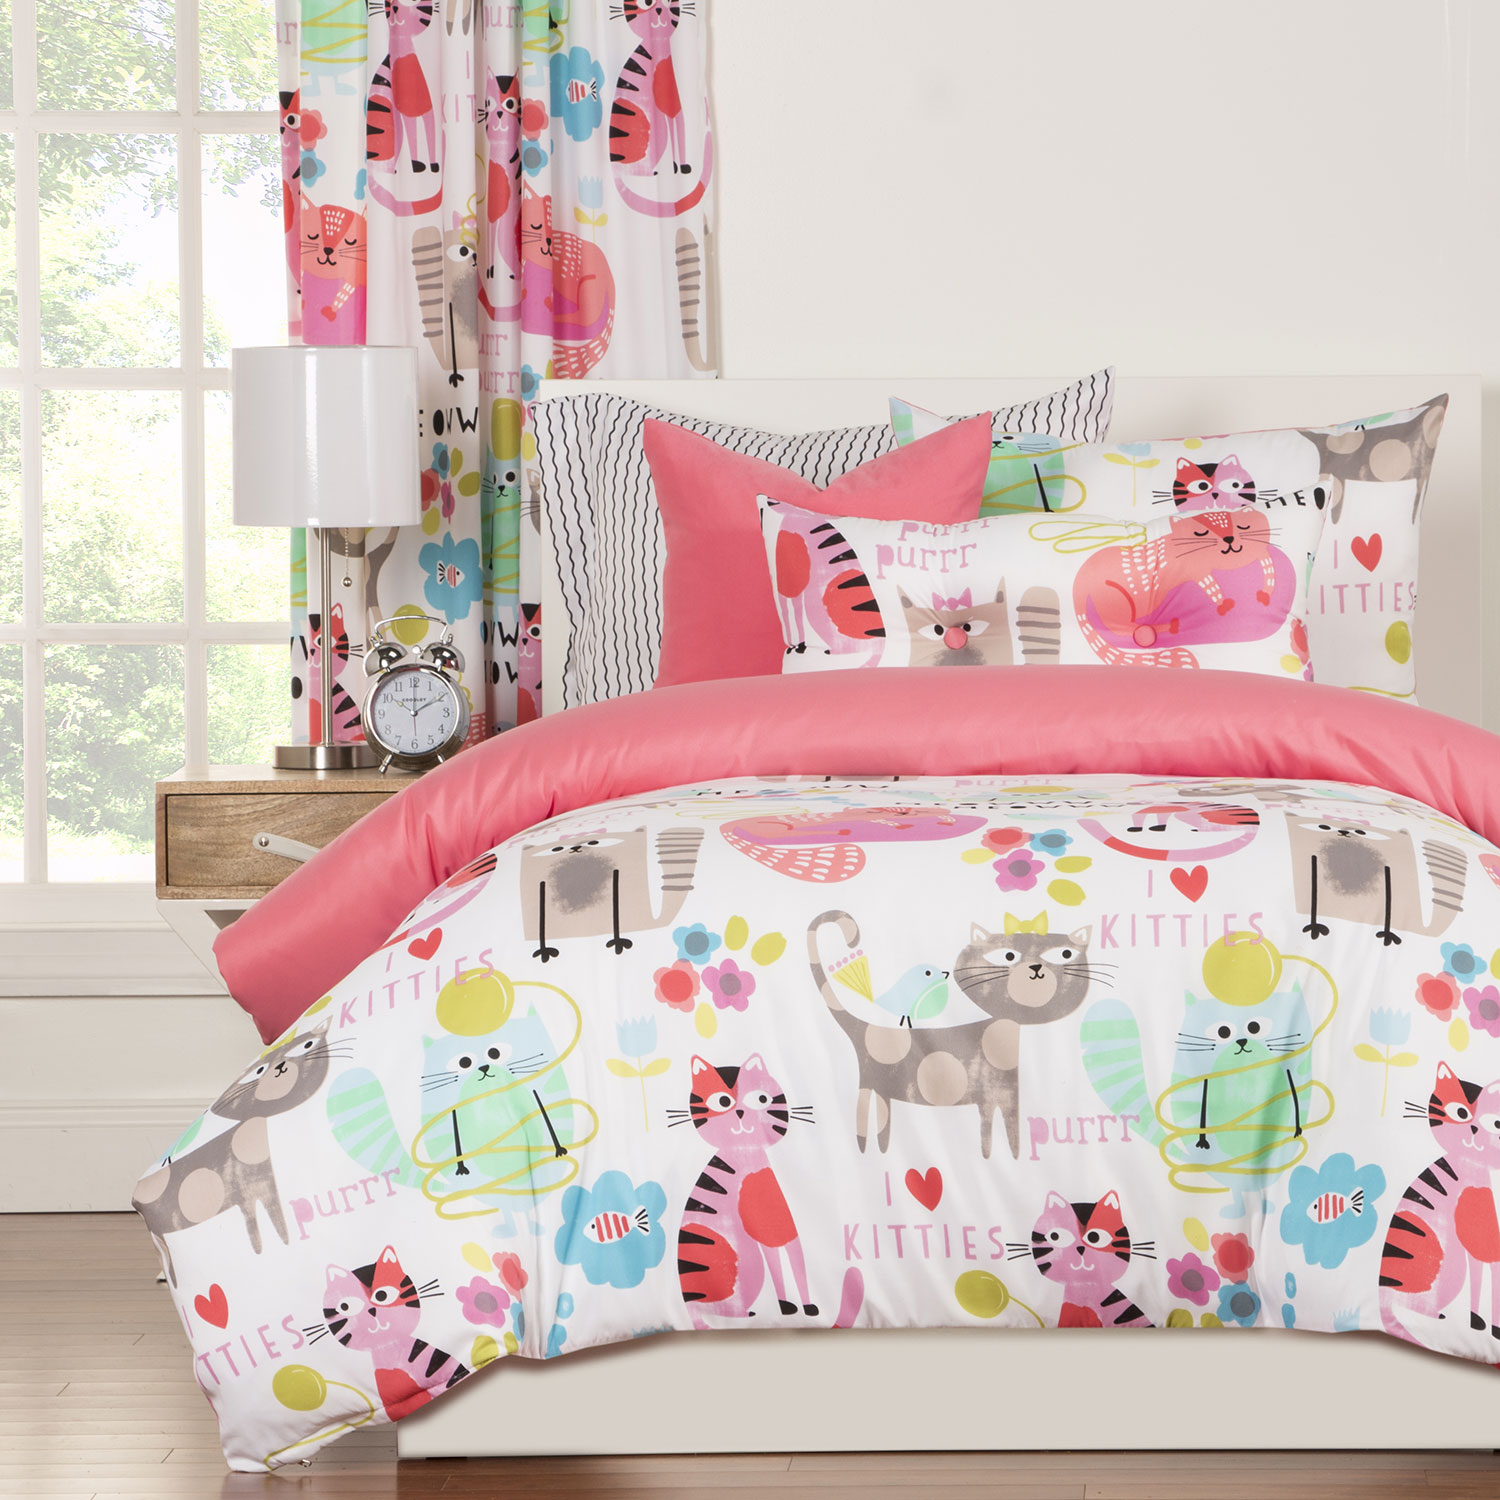 Purrty Cat By Crayola Bedding Beddingsuperstore Com